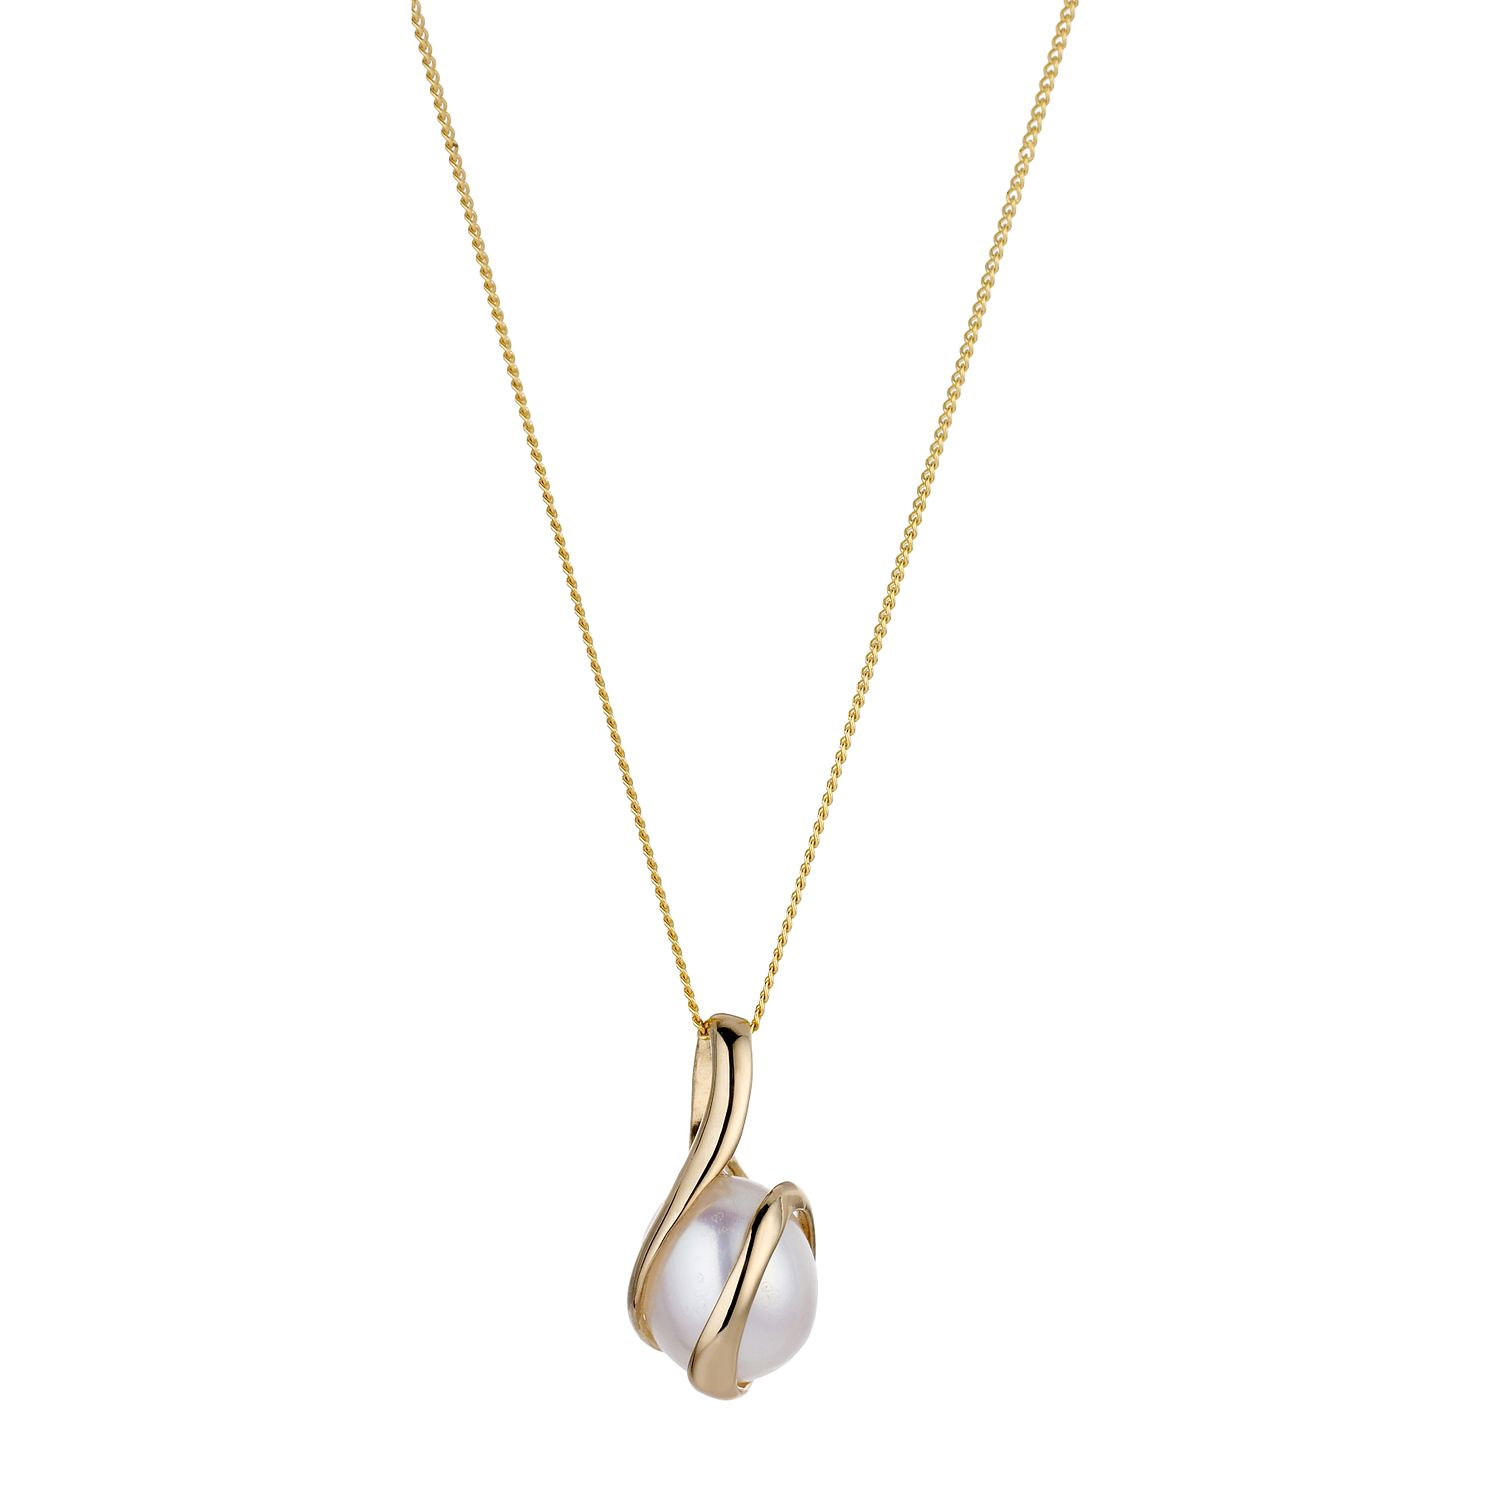 johnlewis necklace buylondon london single pearl willow com gold burlington online main rsp pdp at pendant road